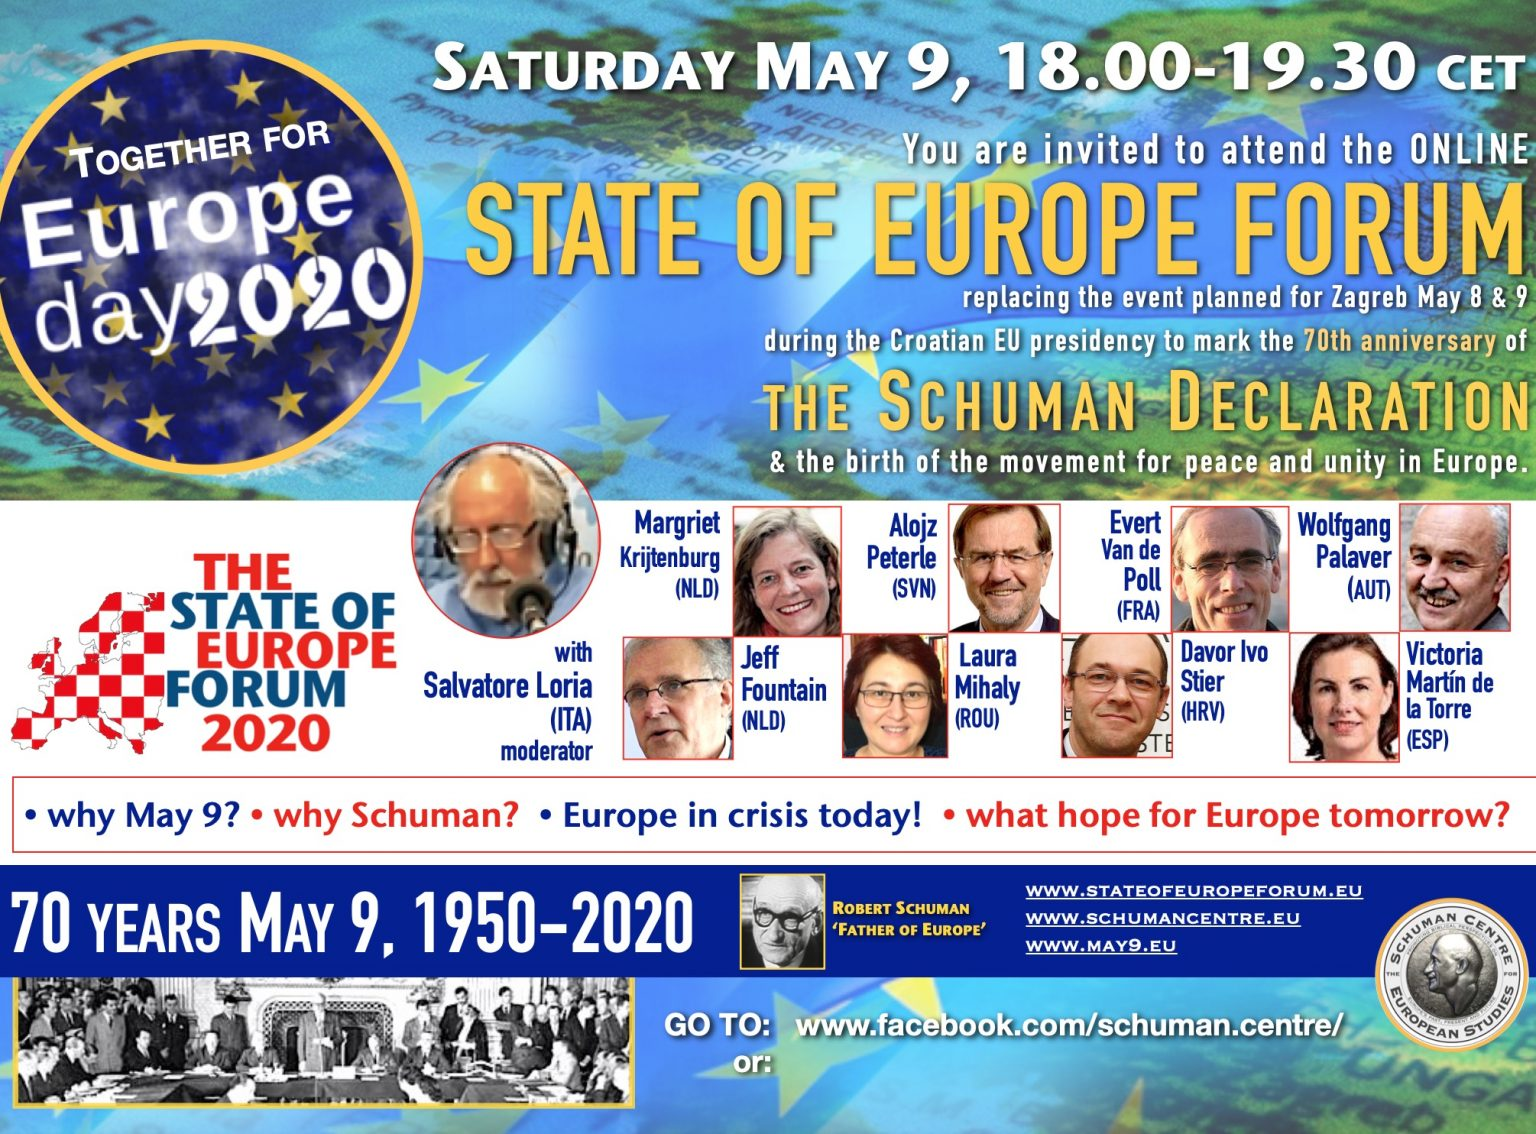 State of Europe Forum